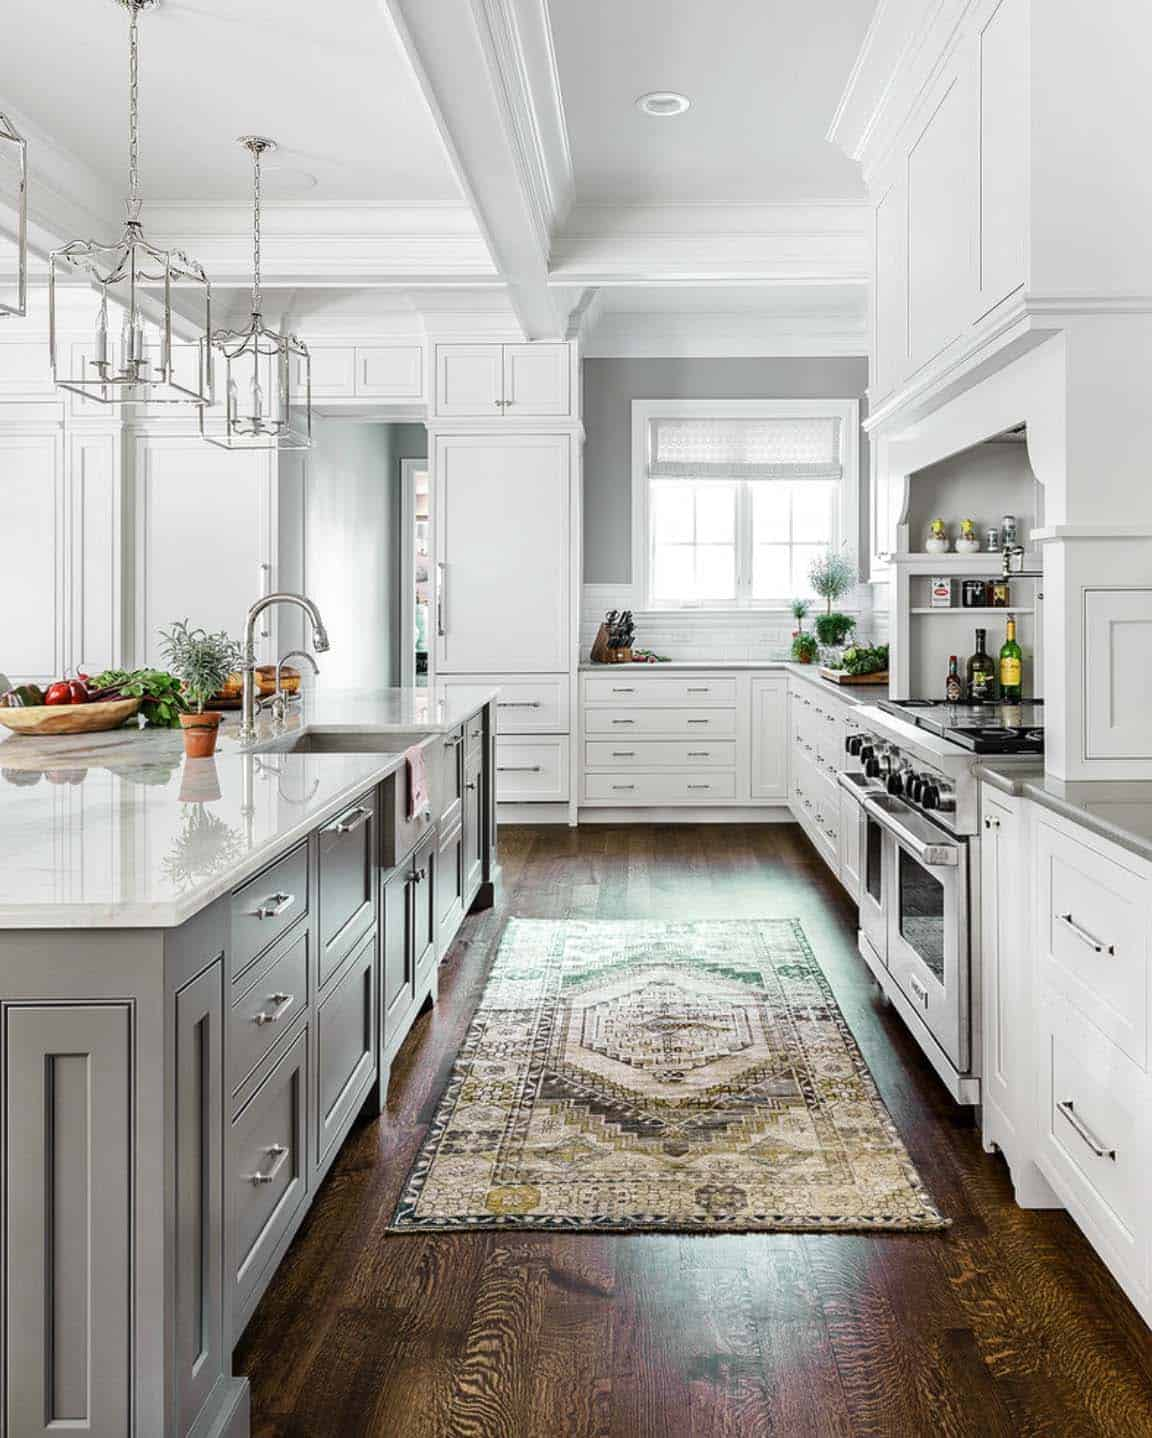 Kitchen Floor Remodel Ideas: 30+ Beautiful And Inspiring Light-filled Kitchens With